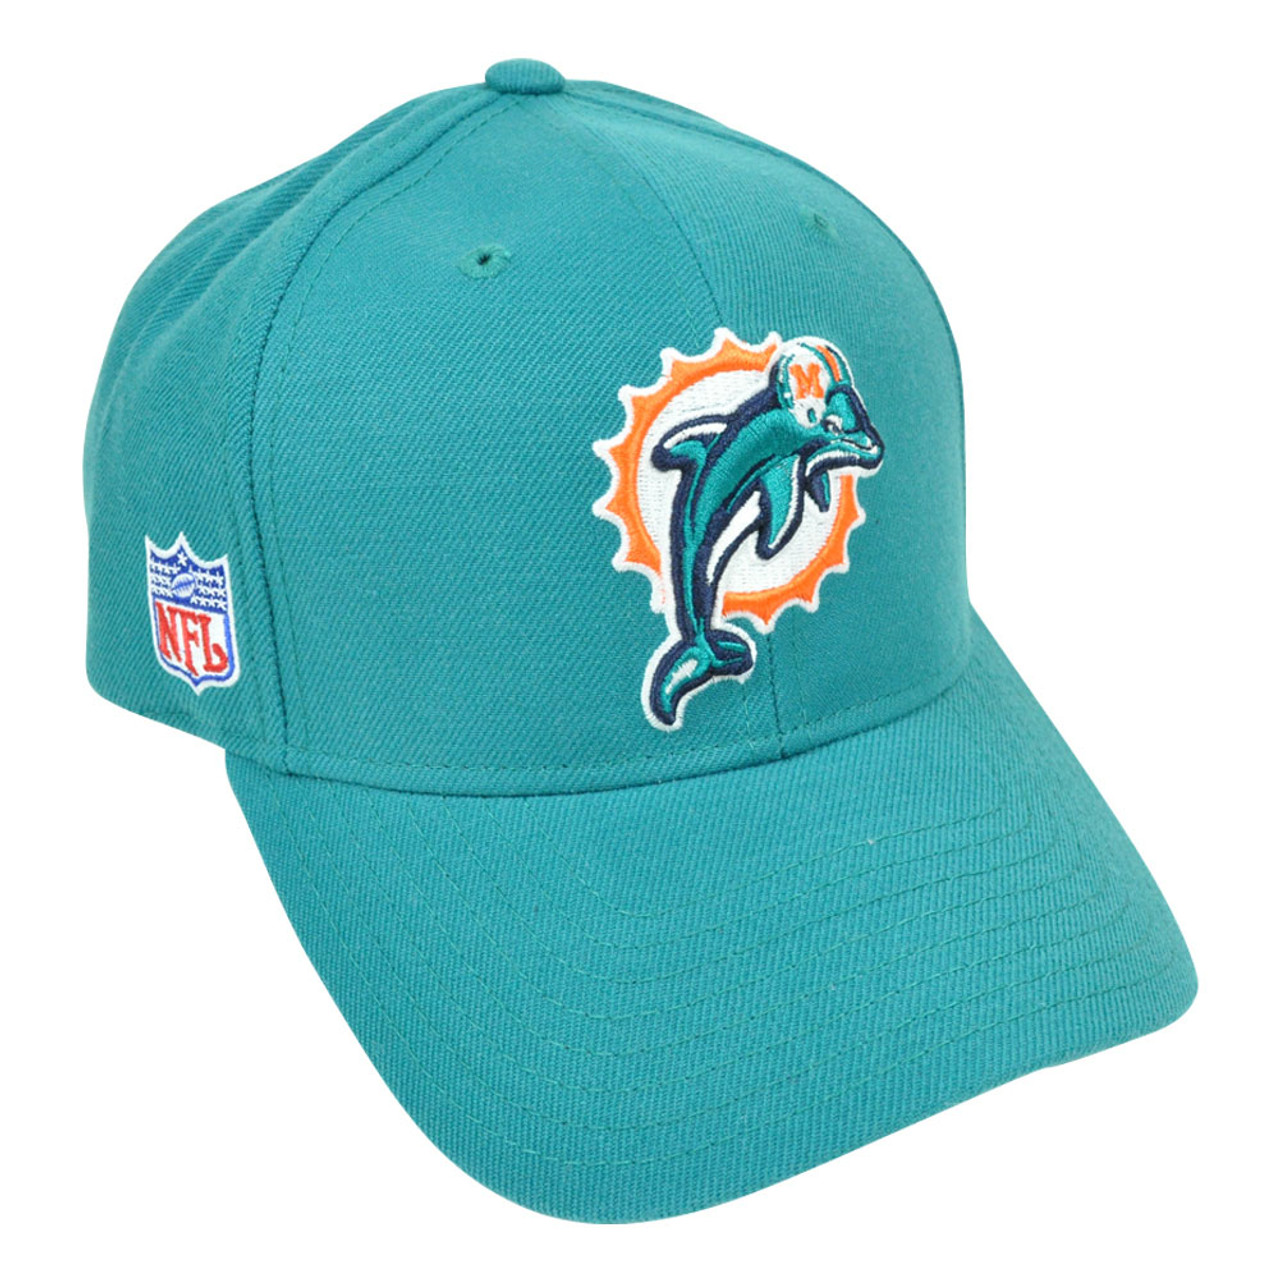 NFL Miami Dolphins Reebok Rbk Curved Bill Constructed Licensed Hat Cap - Sinbad  Sports Store ea31d5693